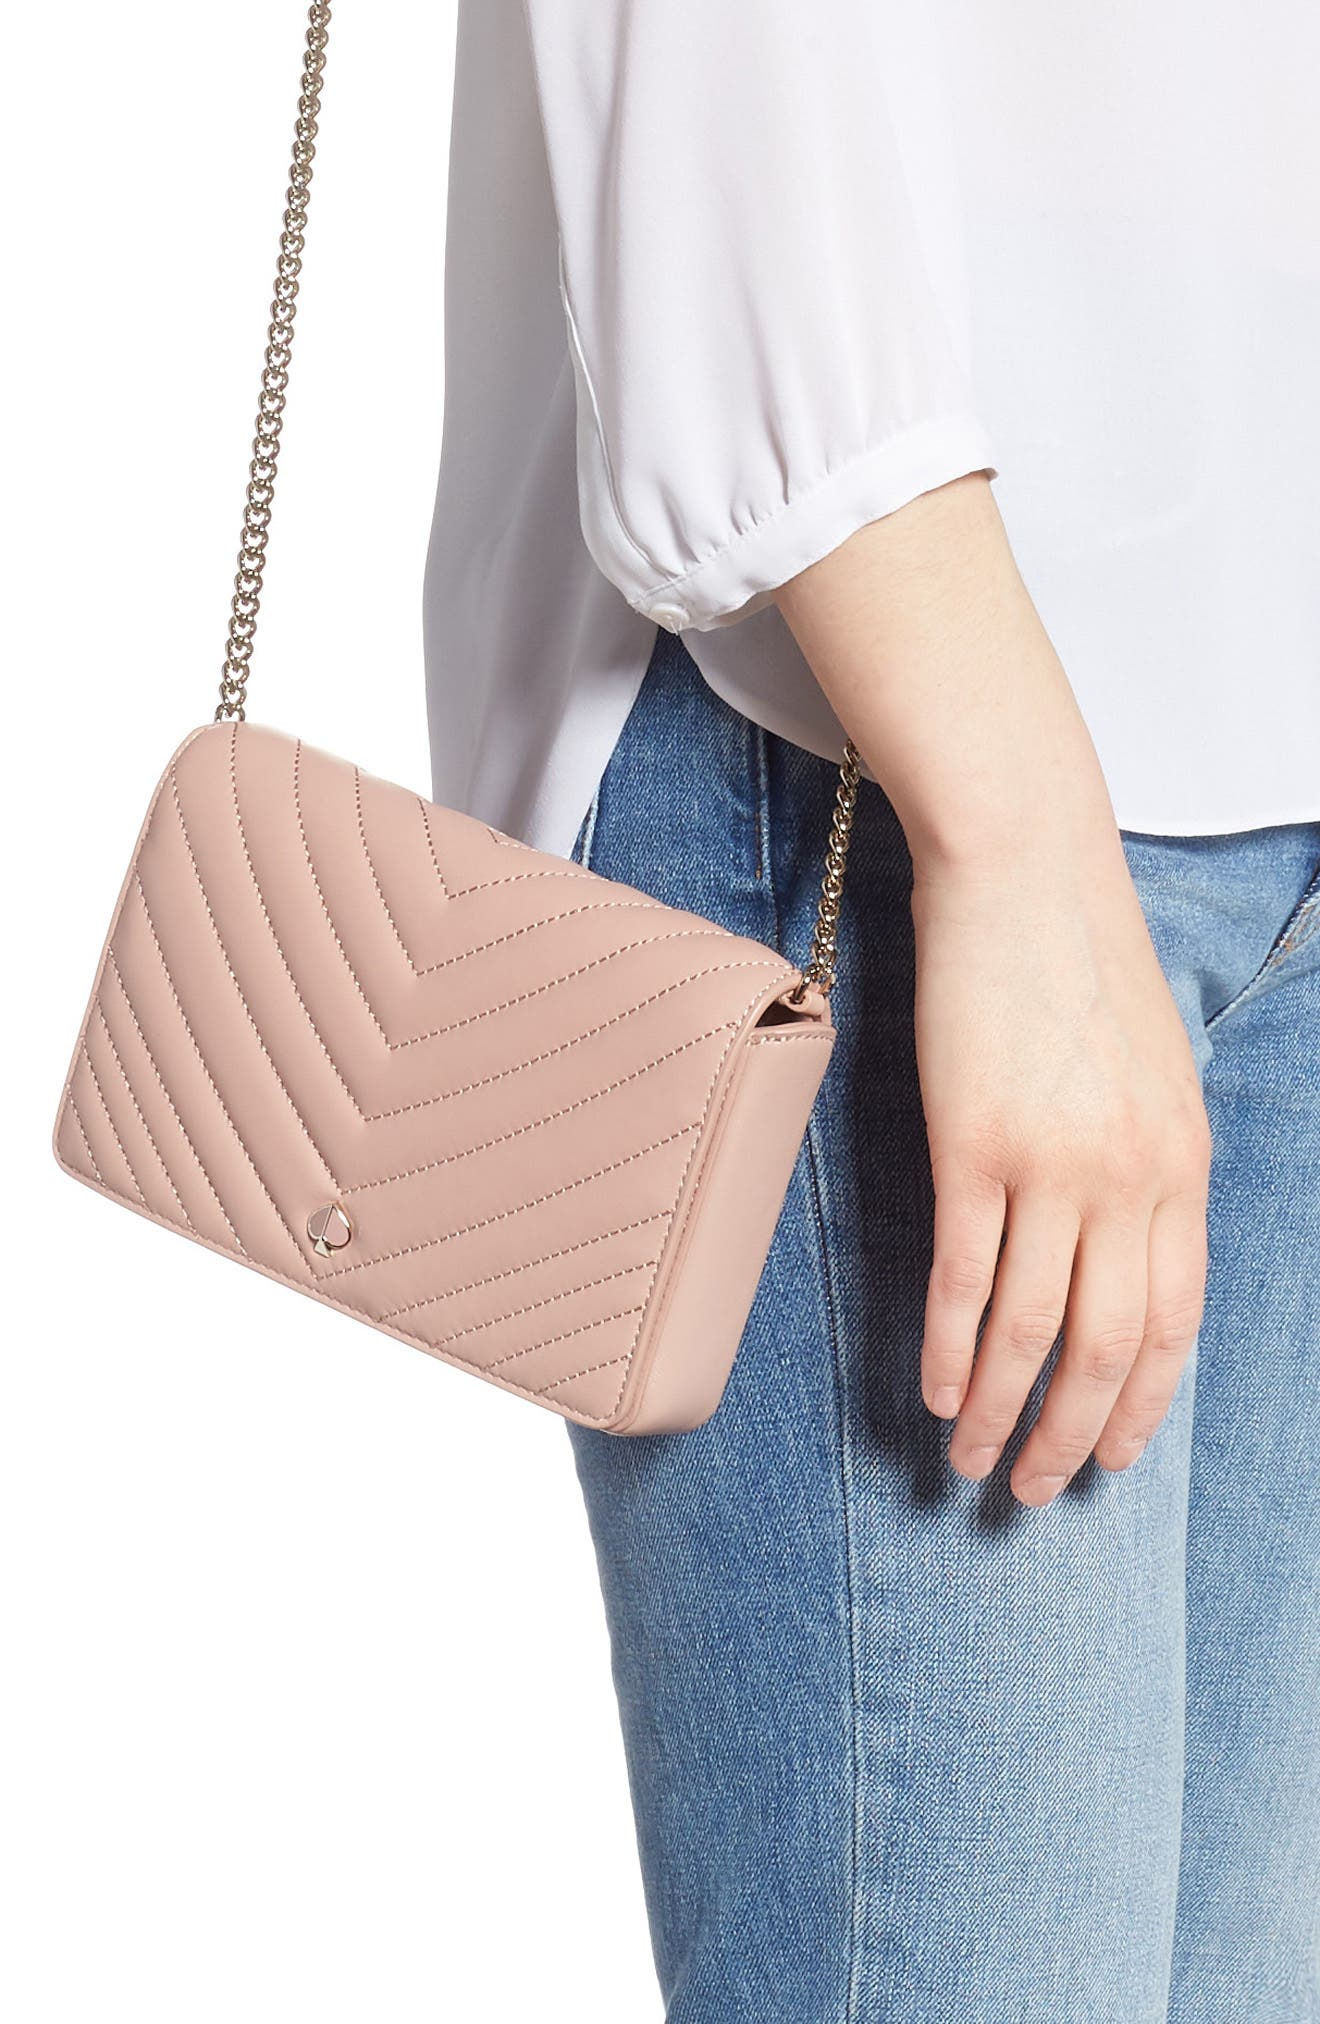 KATE SPADE NEW YORK, amelia quilted leather clutch, Alternate thumbnail 2, color, FLAPPER PINK